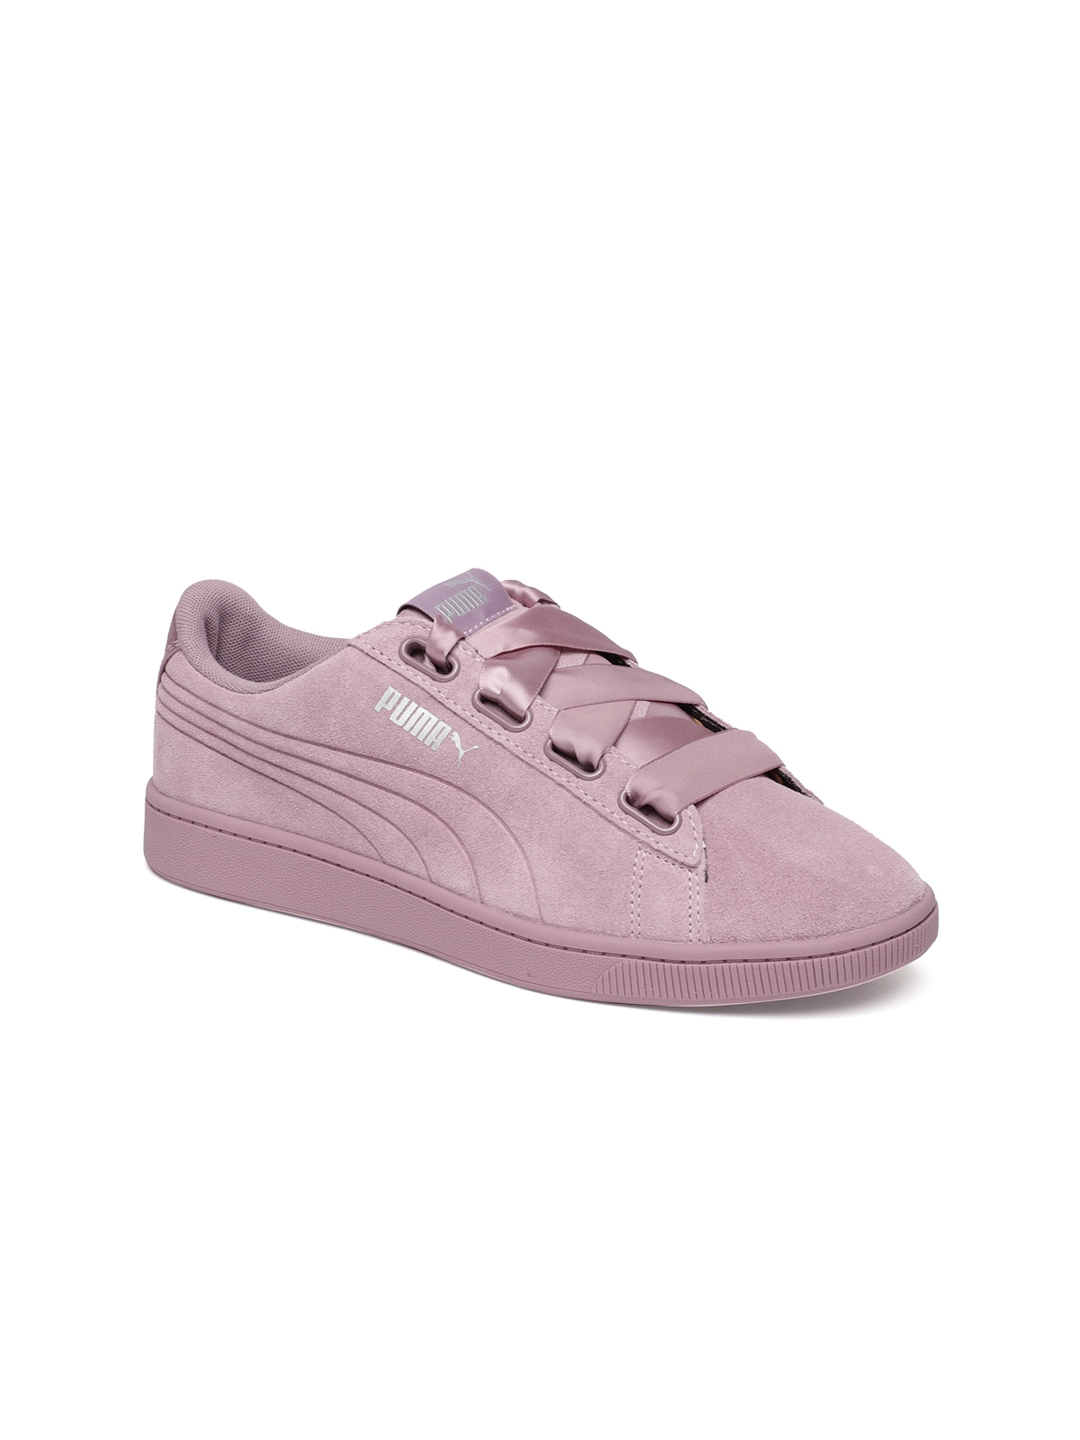 21bcc4787e Buy Puma Women Purple Vikky V2 Ribbon Suede Sneakers - Casual Shoes ...